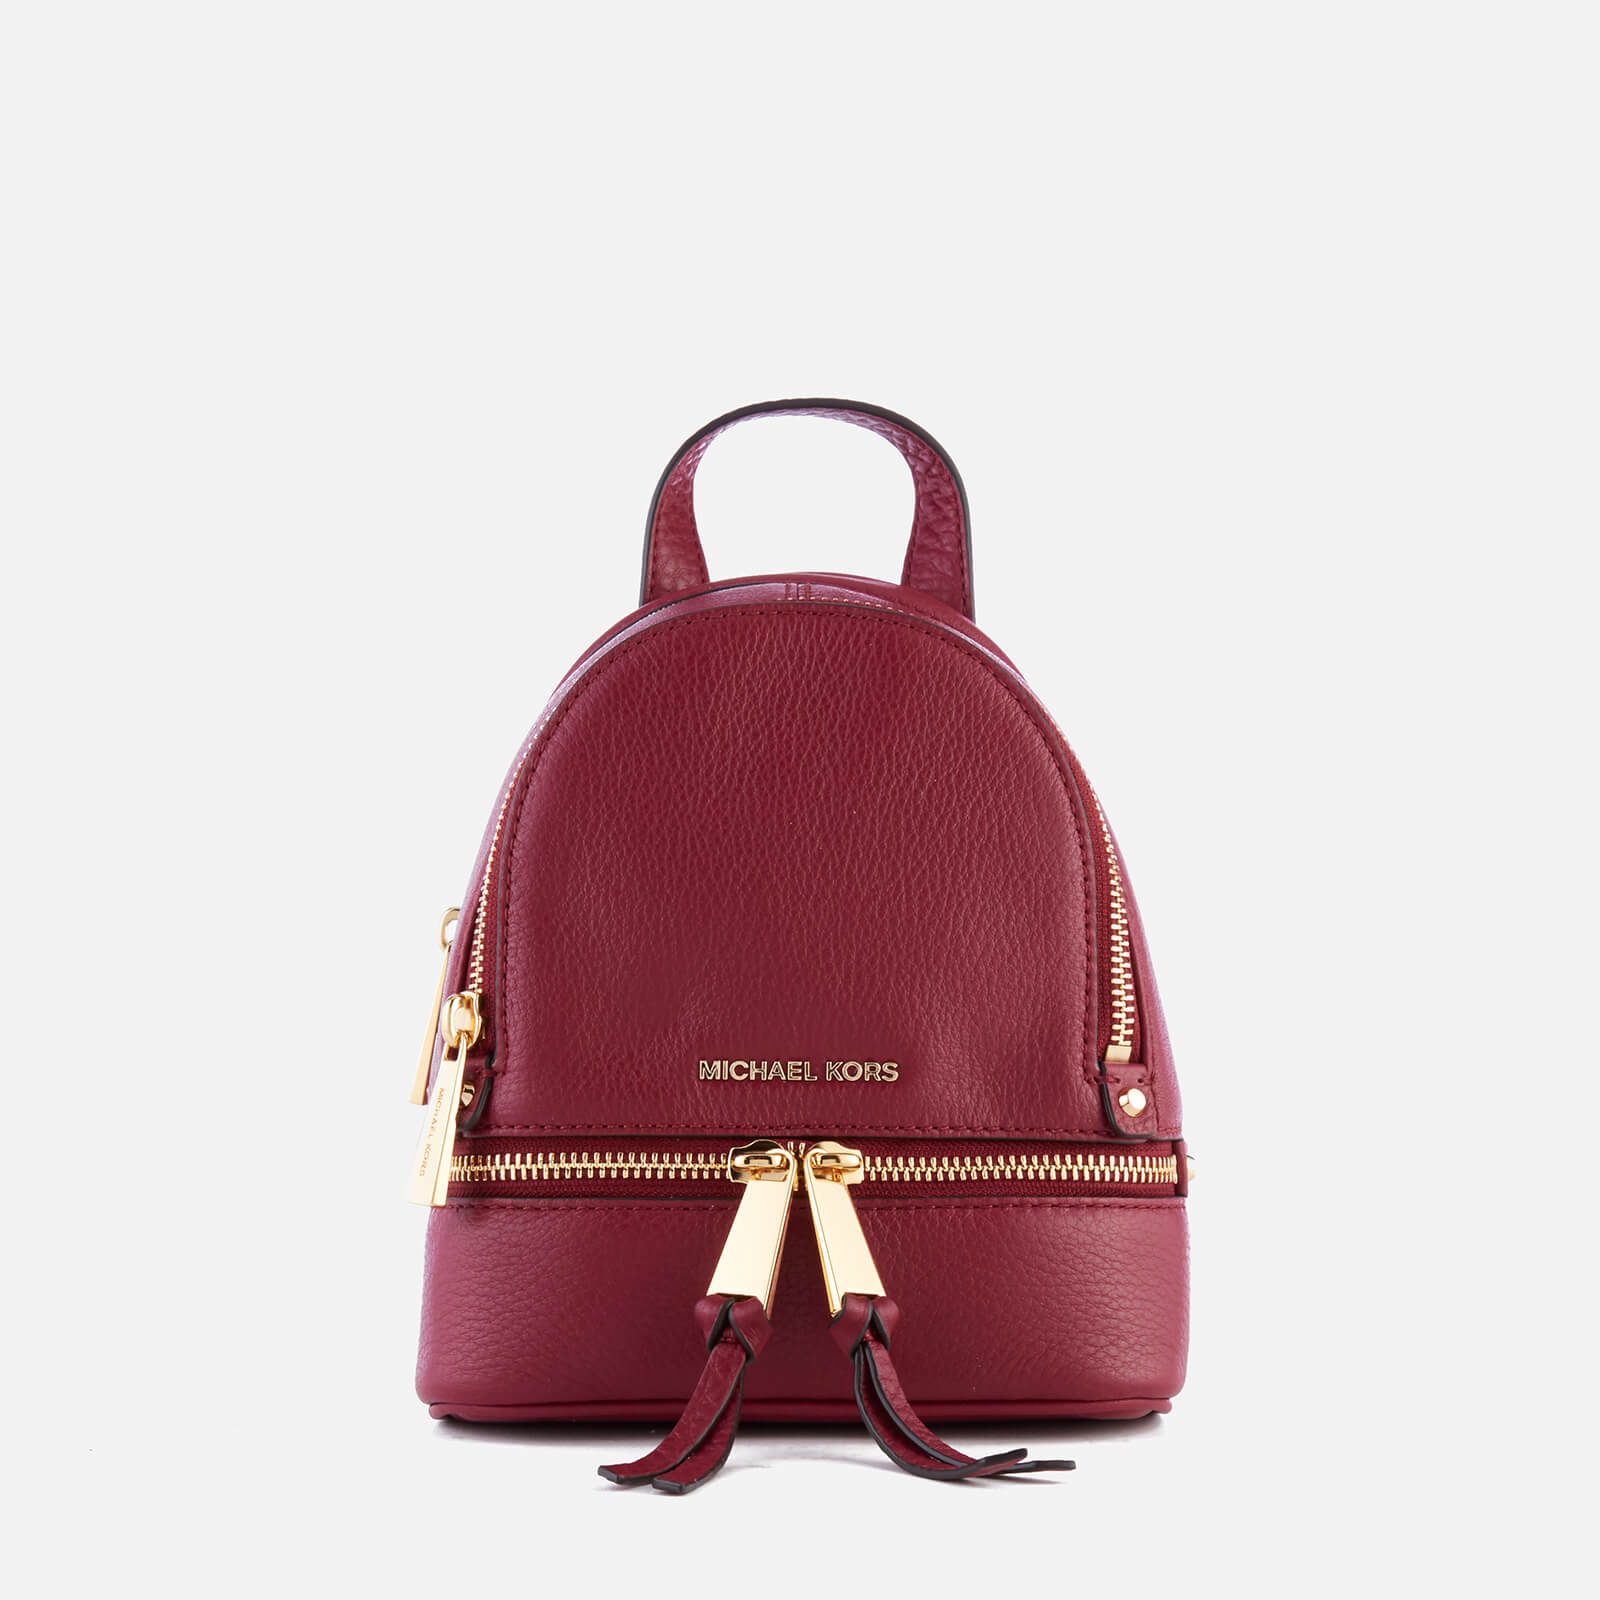 19f53a7cb32a MICHAEL MICHAEL KORS Women s Rhea Zip Extra Small Messenger Backpack - Mulberry  Womens Accessories